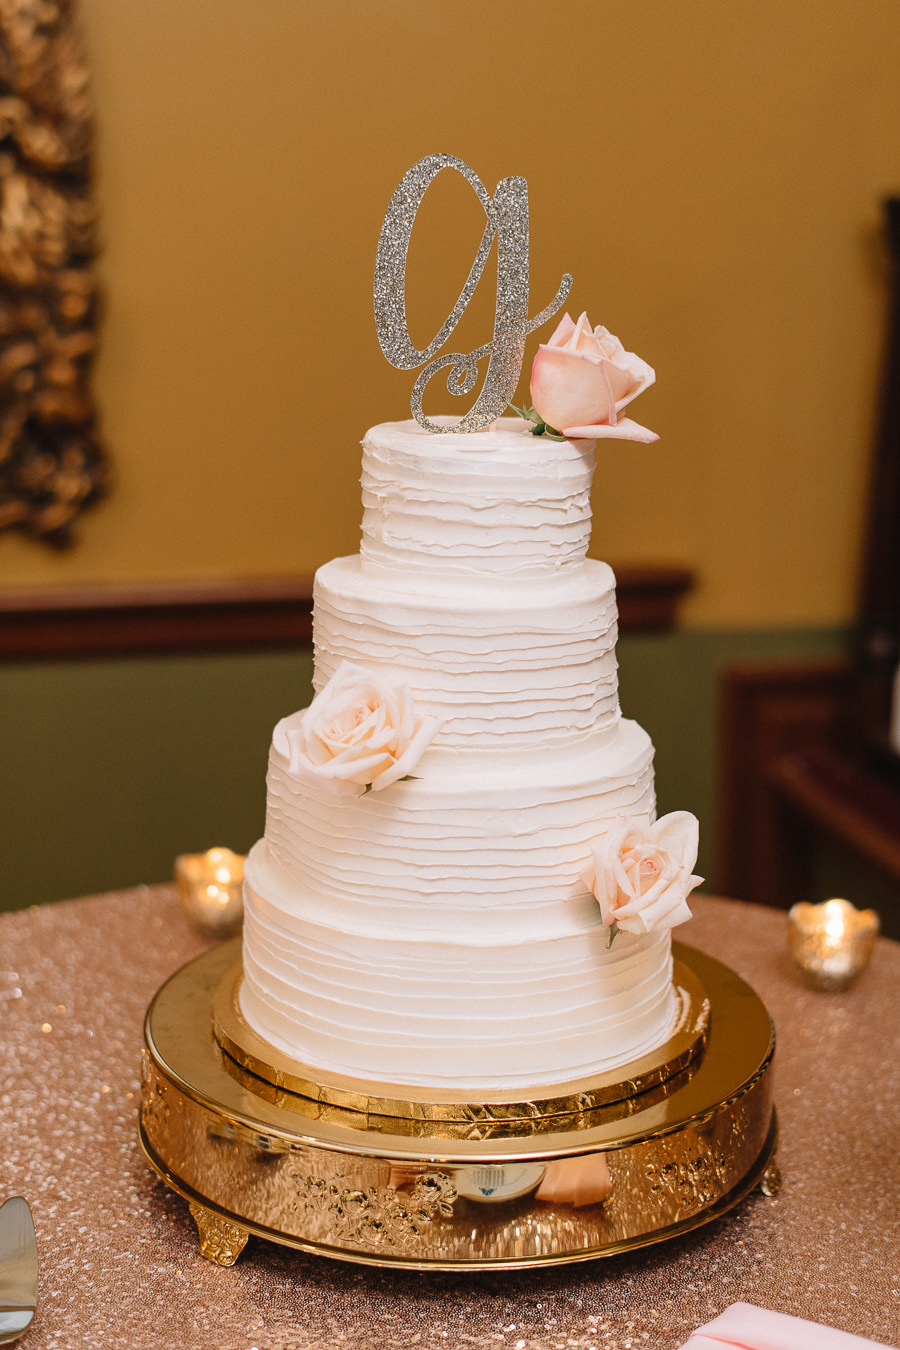 Elegant and Romantic 4-Tier Round Textured Wedding Cake from Tampa Bay Bakery A Piece of Cake on Gold Serving Platter with Blush Roses and Stylish Glitter Monogram Initial Topper